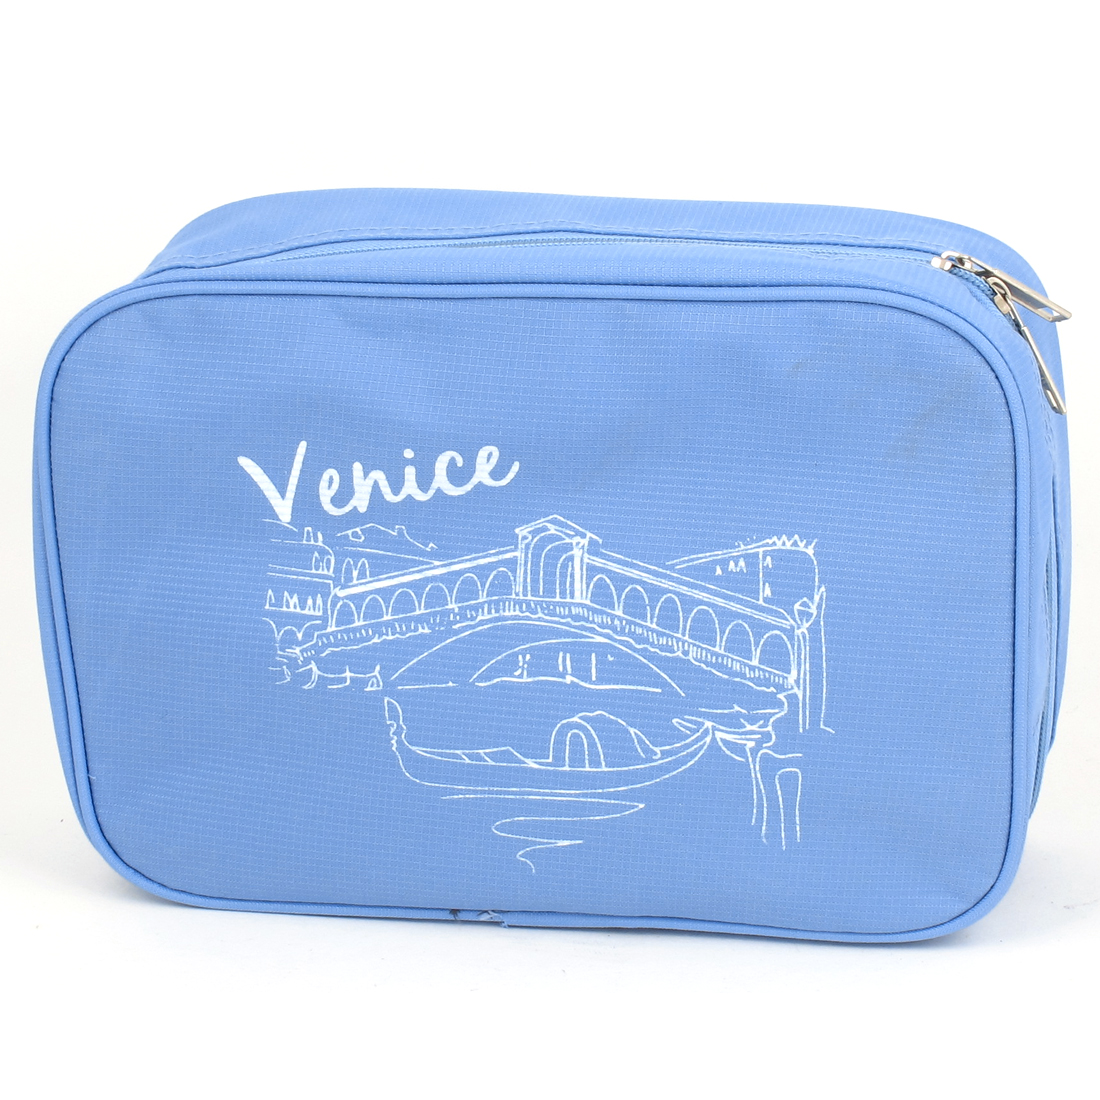 Travel Toiletry Toiletries Makeup Hanging Folding Wash Storage Bag Sky Blue